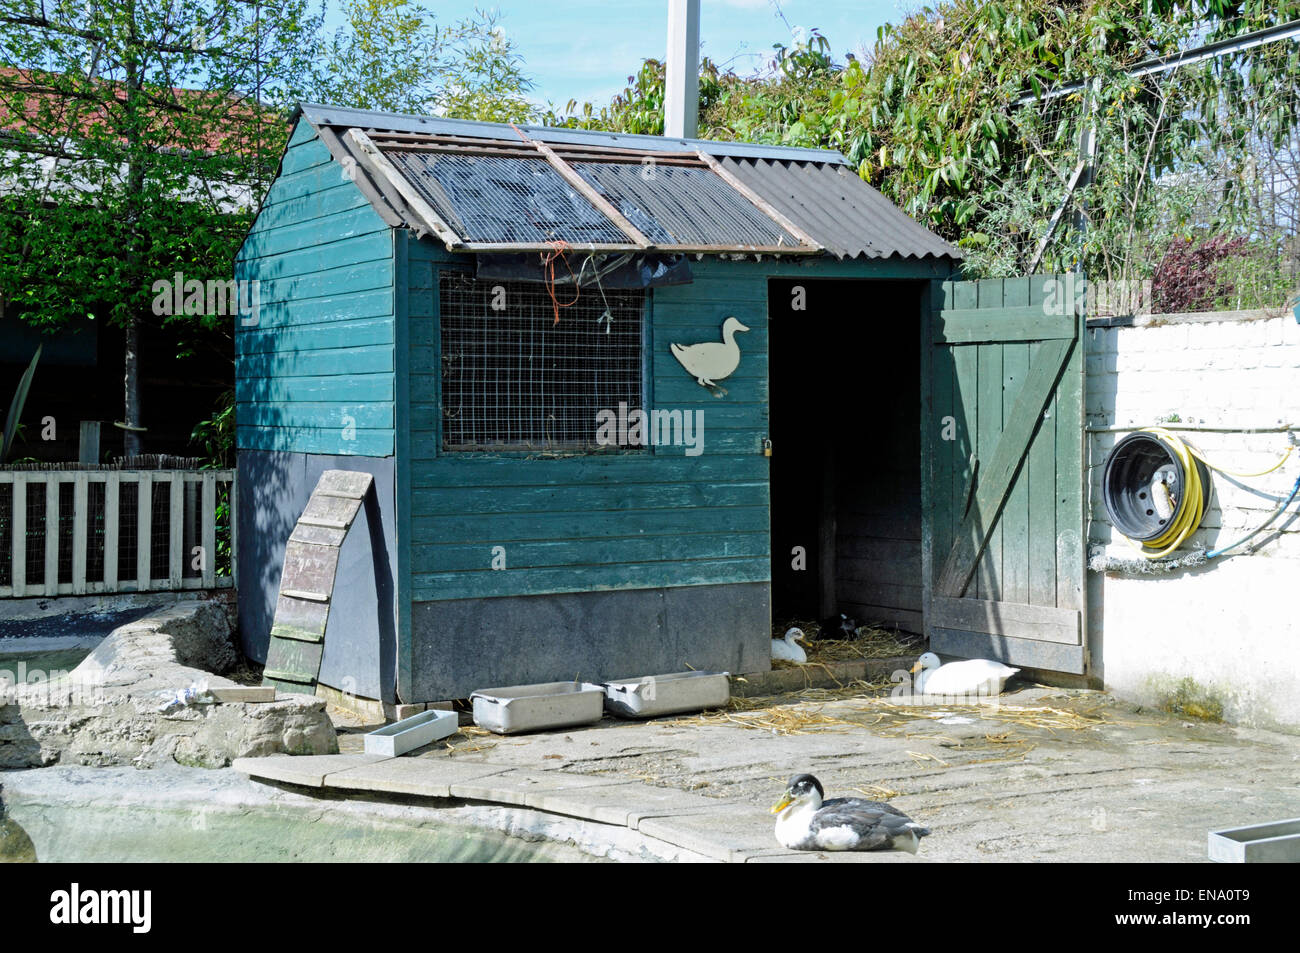 Roosting Shed for geese Freightliners Farm, Holloway, London Borough of Islington, England Britain UK - Stock Image